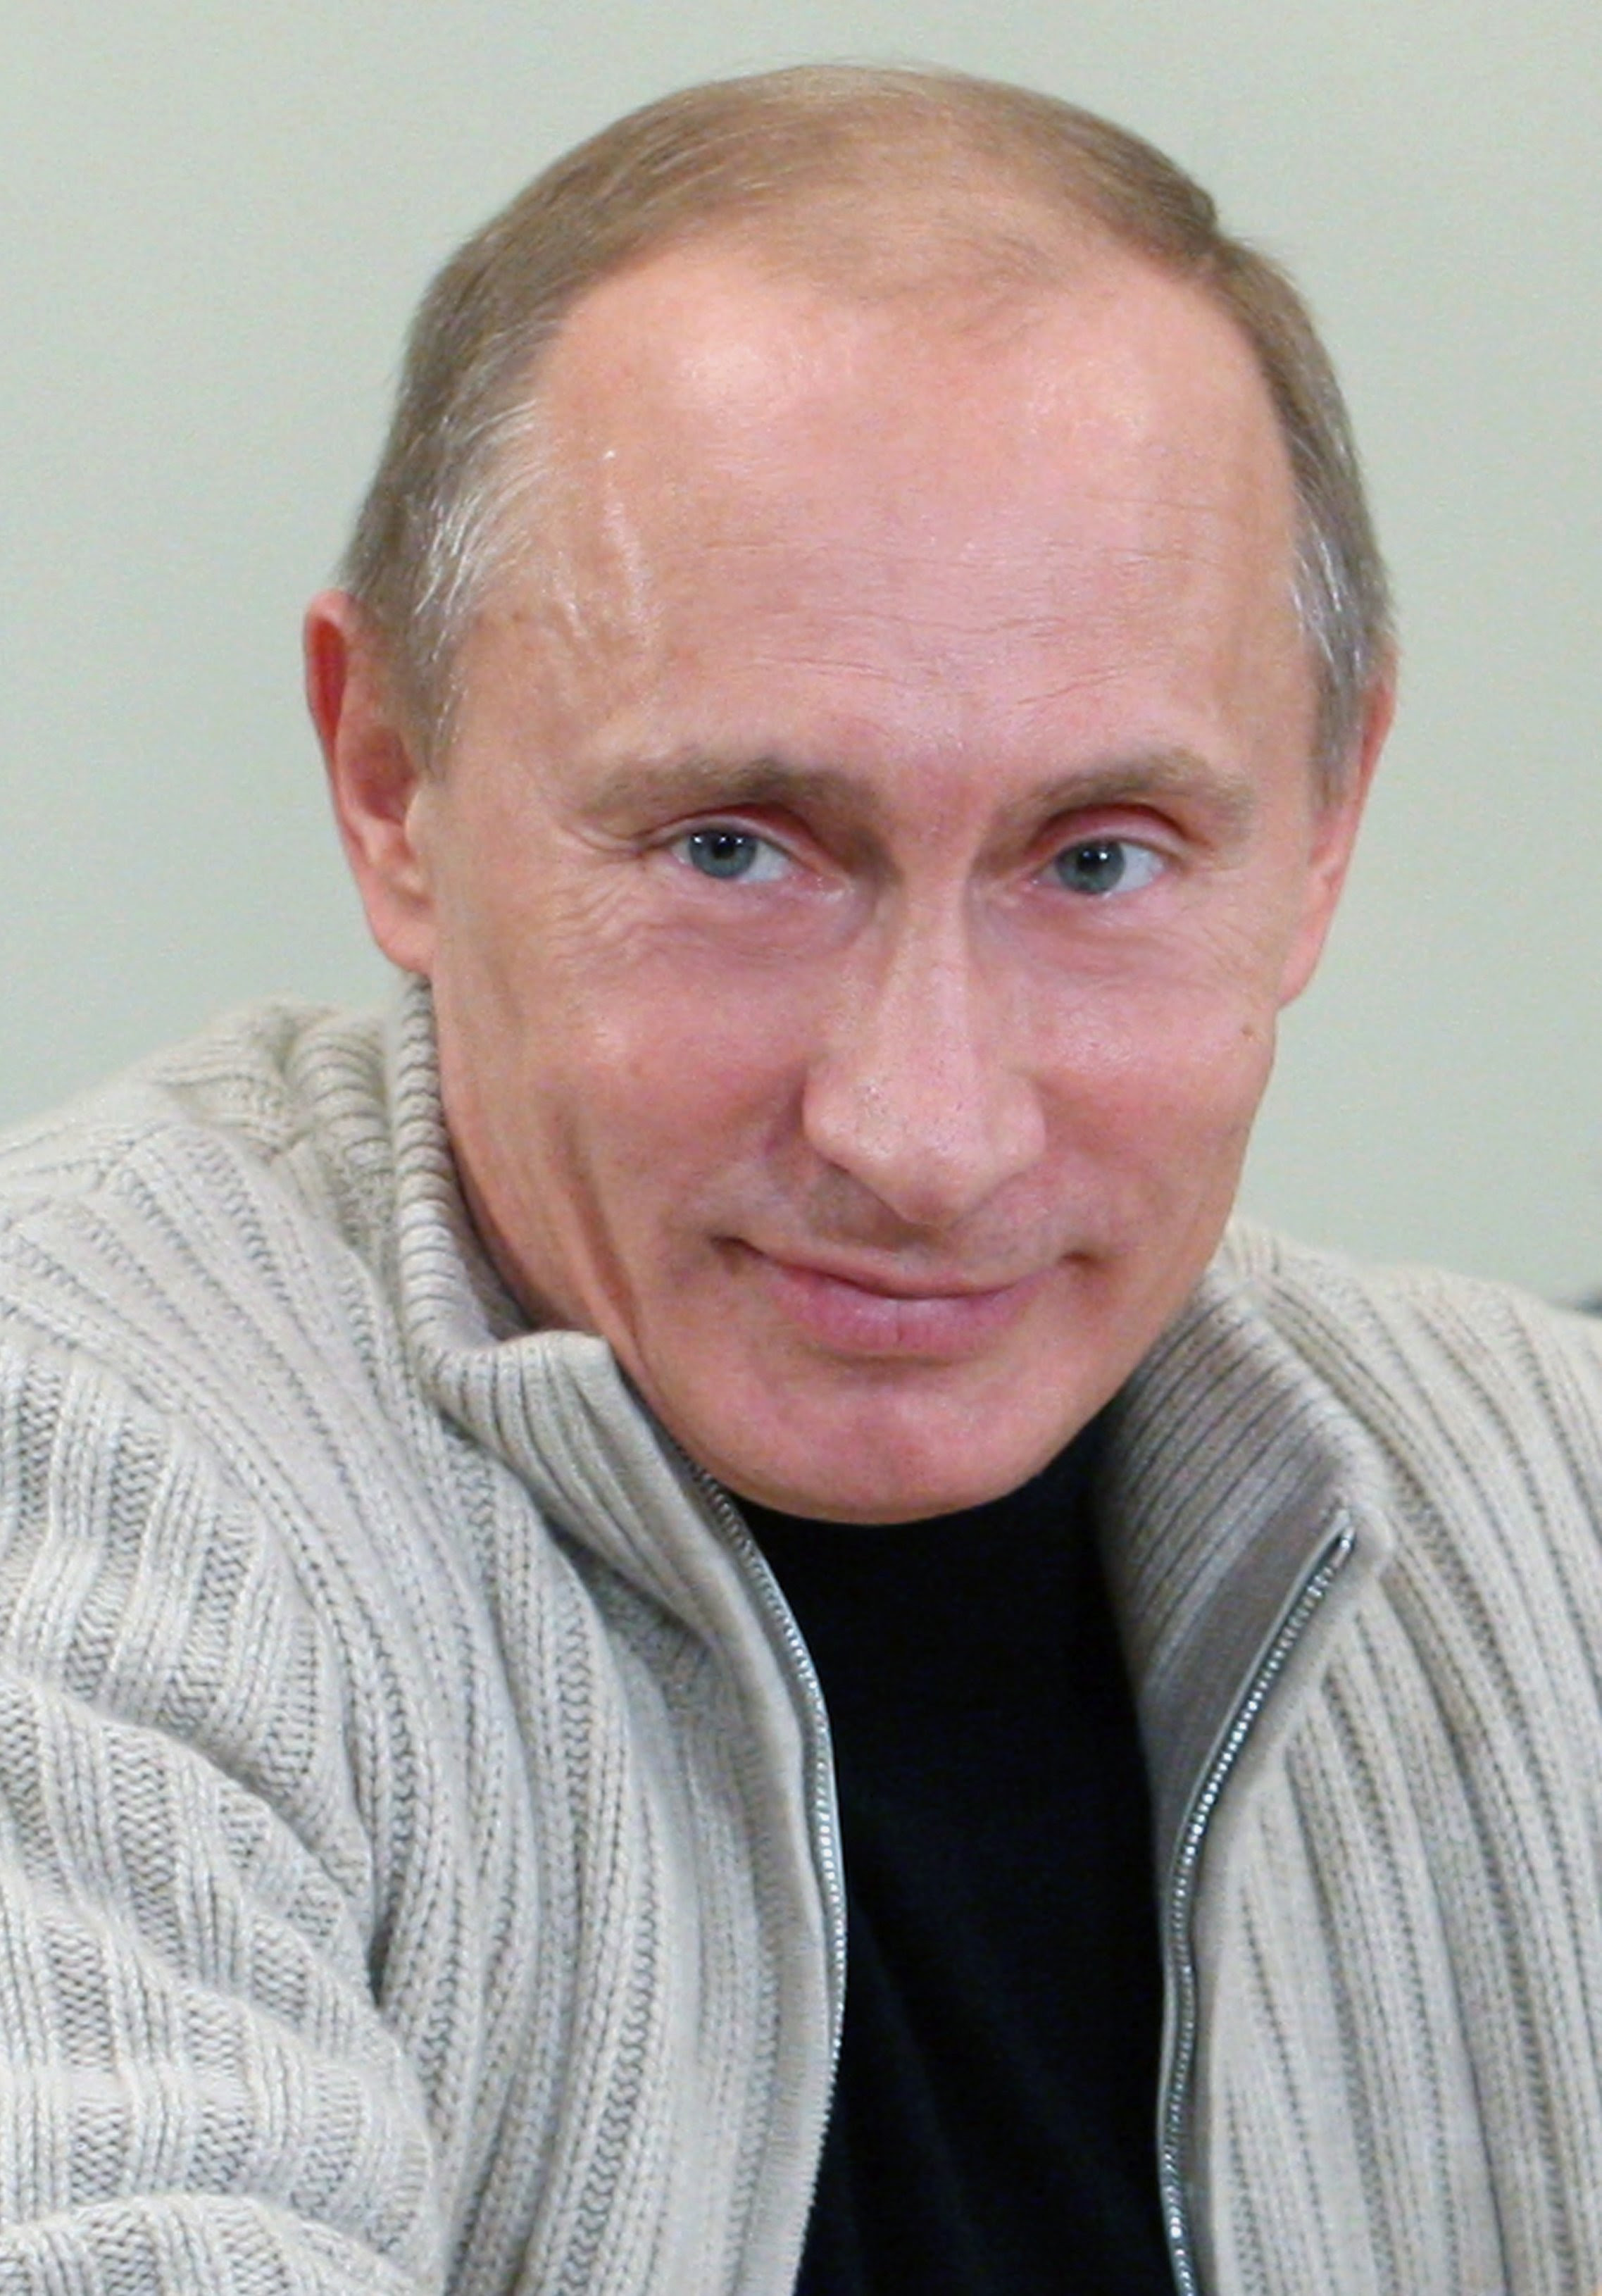 http://upload.wikimedia.org/wikipedia/commons/e/ee/Vladimir_Putin_12022.jpg